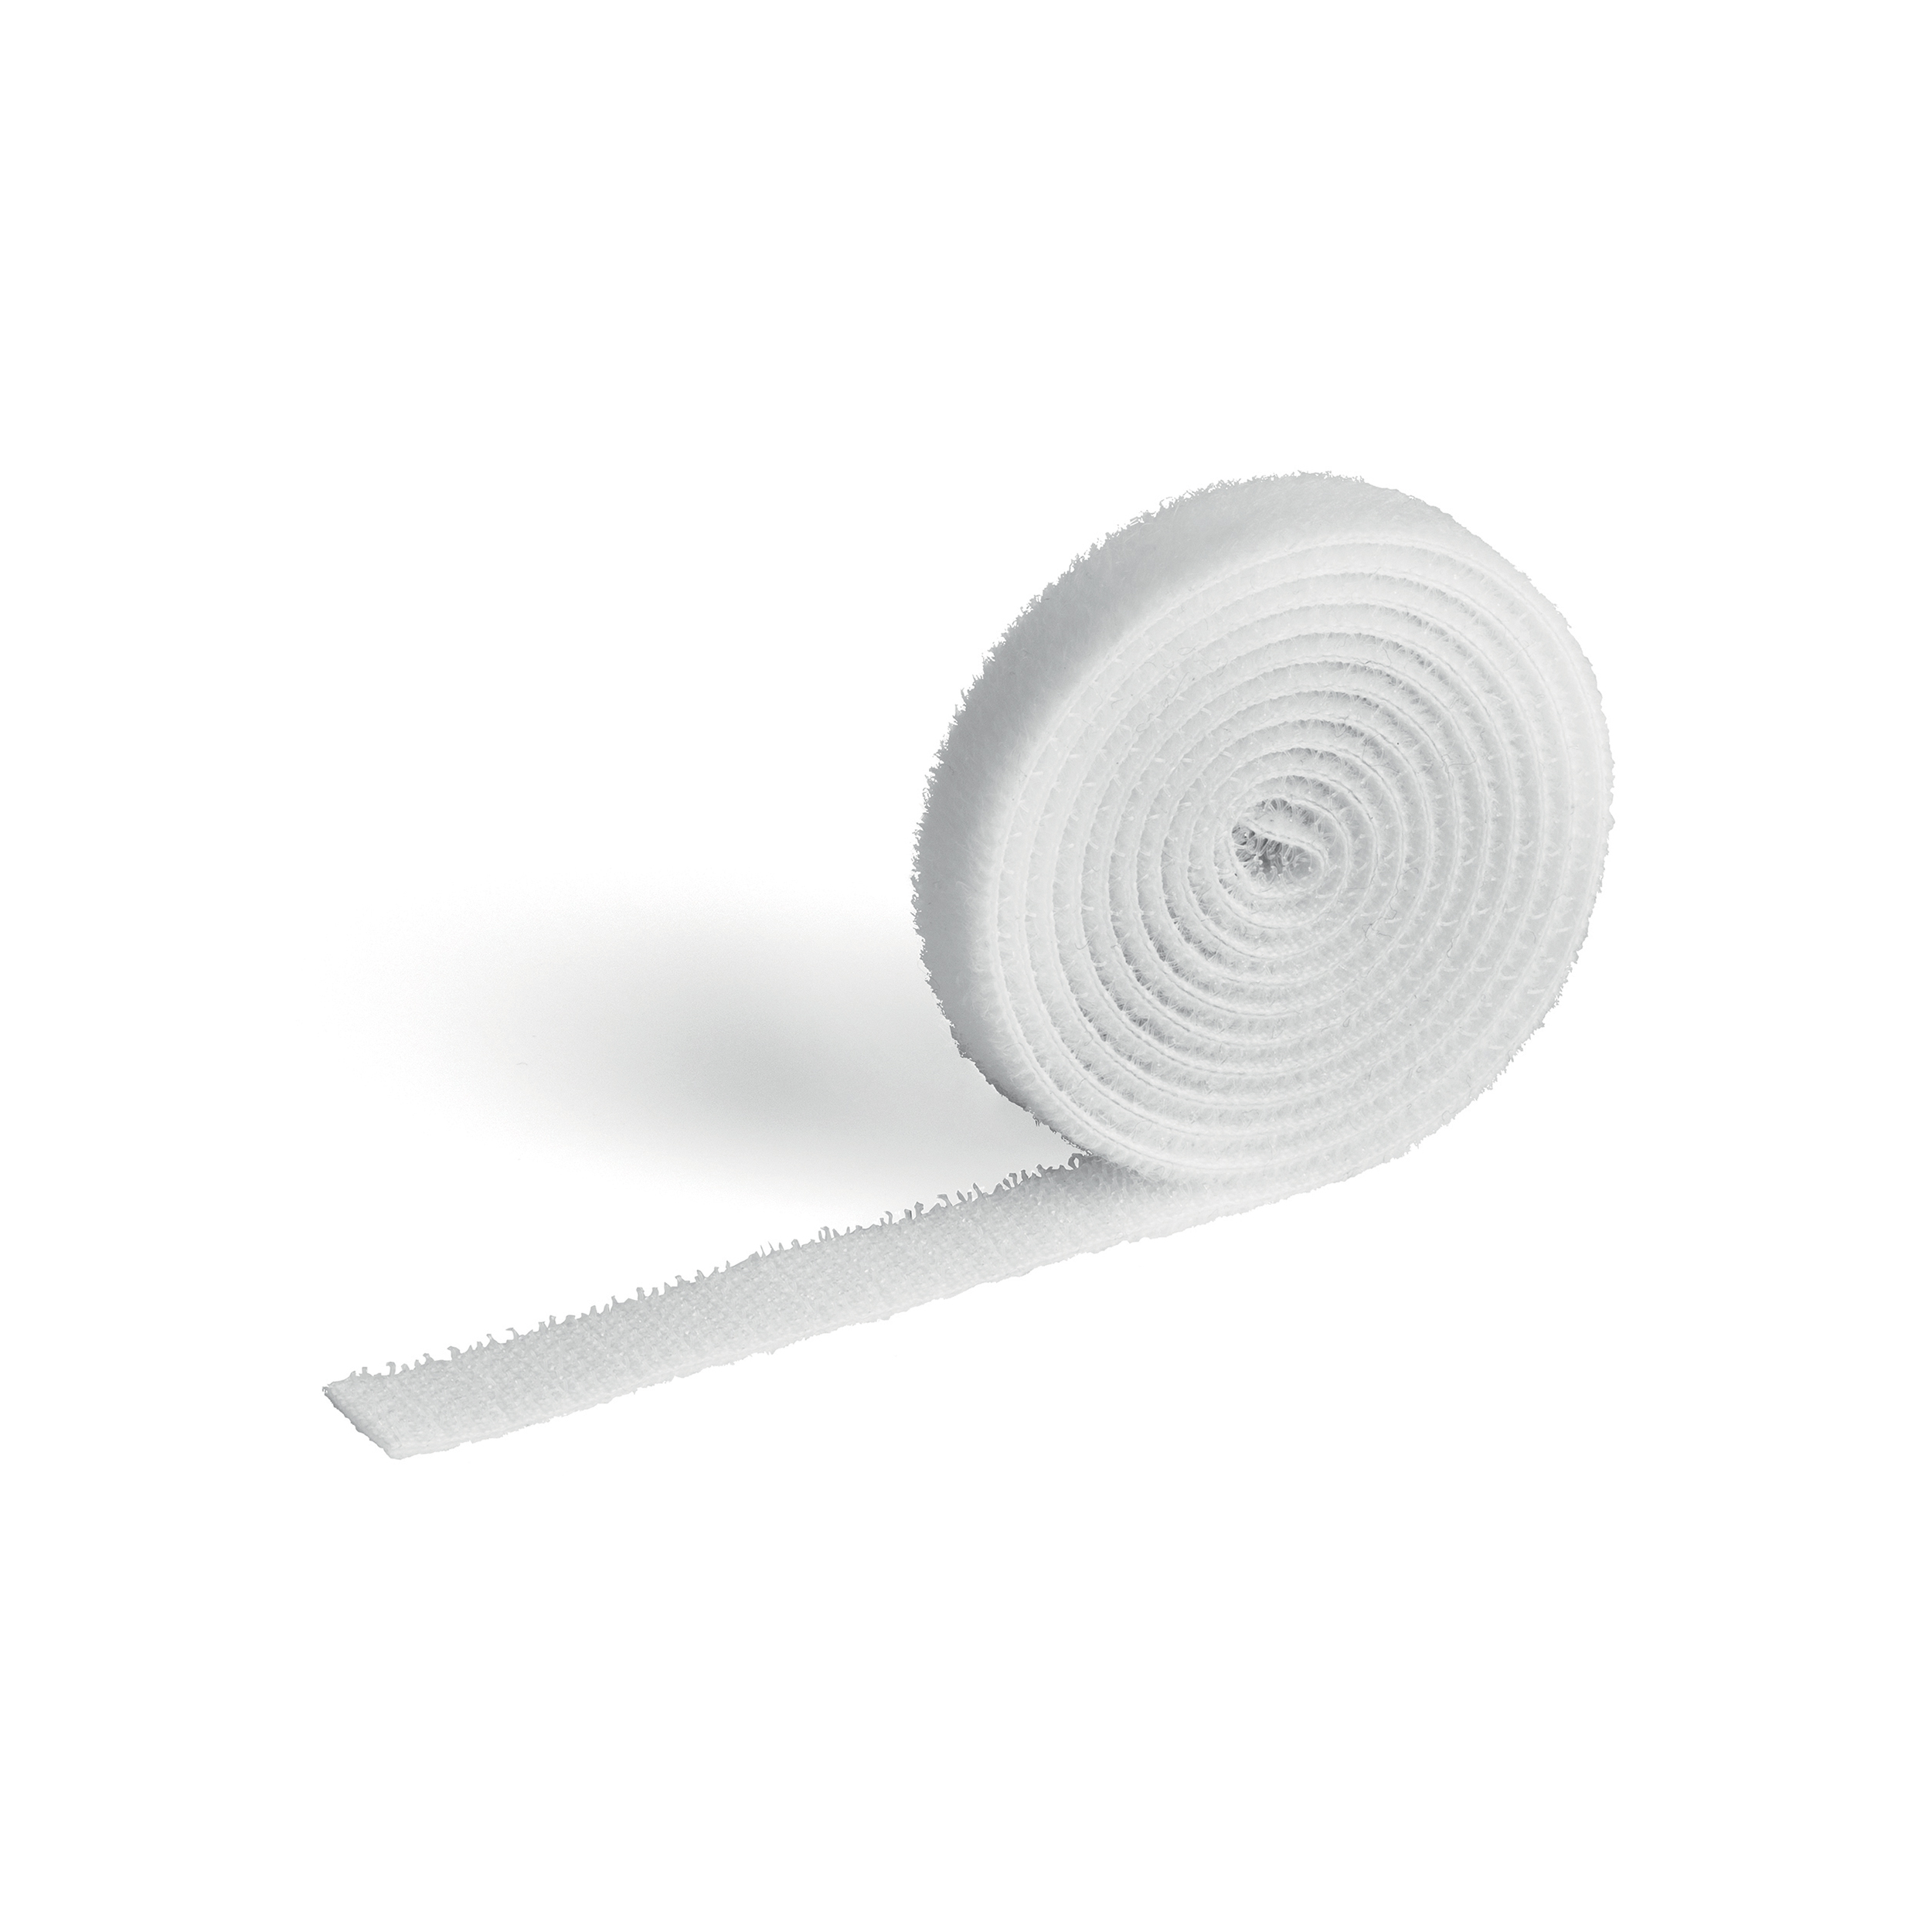 Cable accessories Durable CAVOLINE GRIP 10 Self Gripping Cable Management Tape White Ref 503102